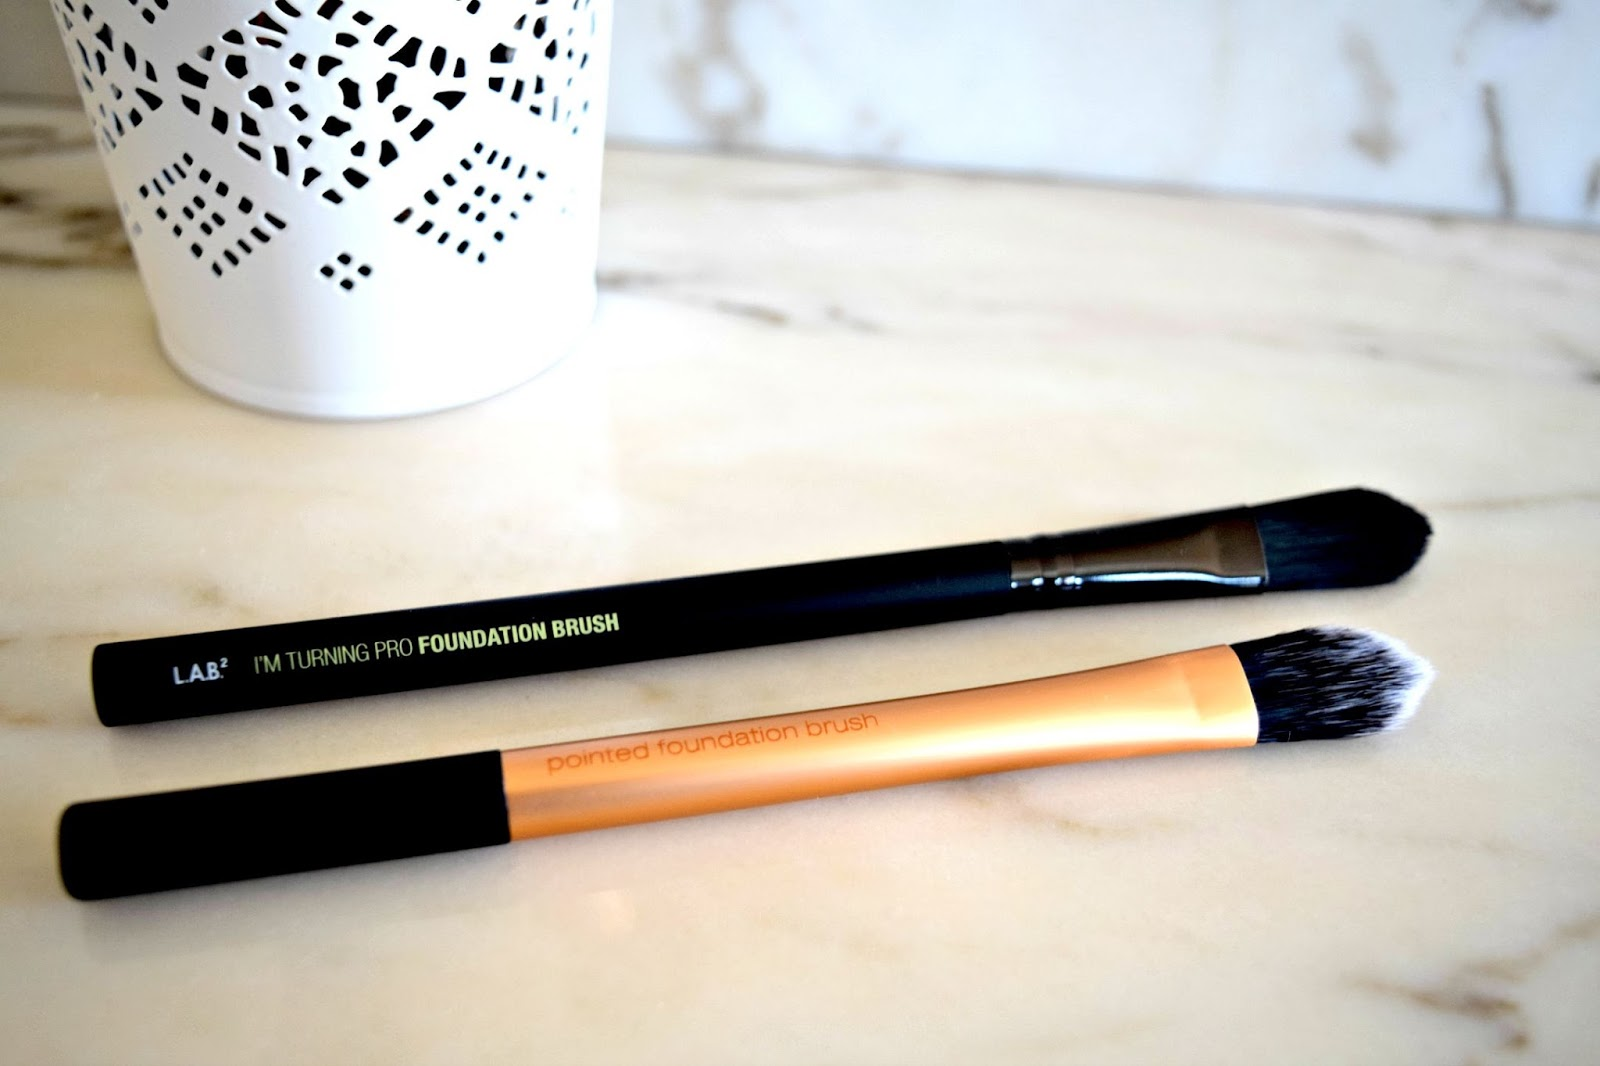 Foundation brush LAB2 review